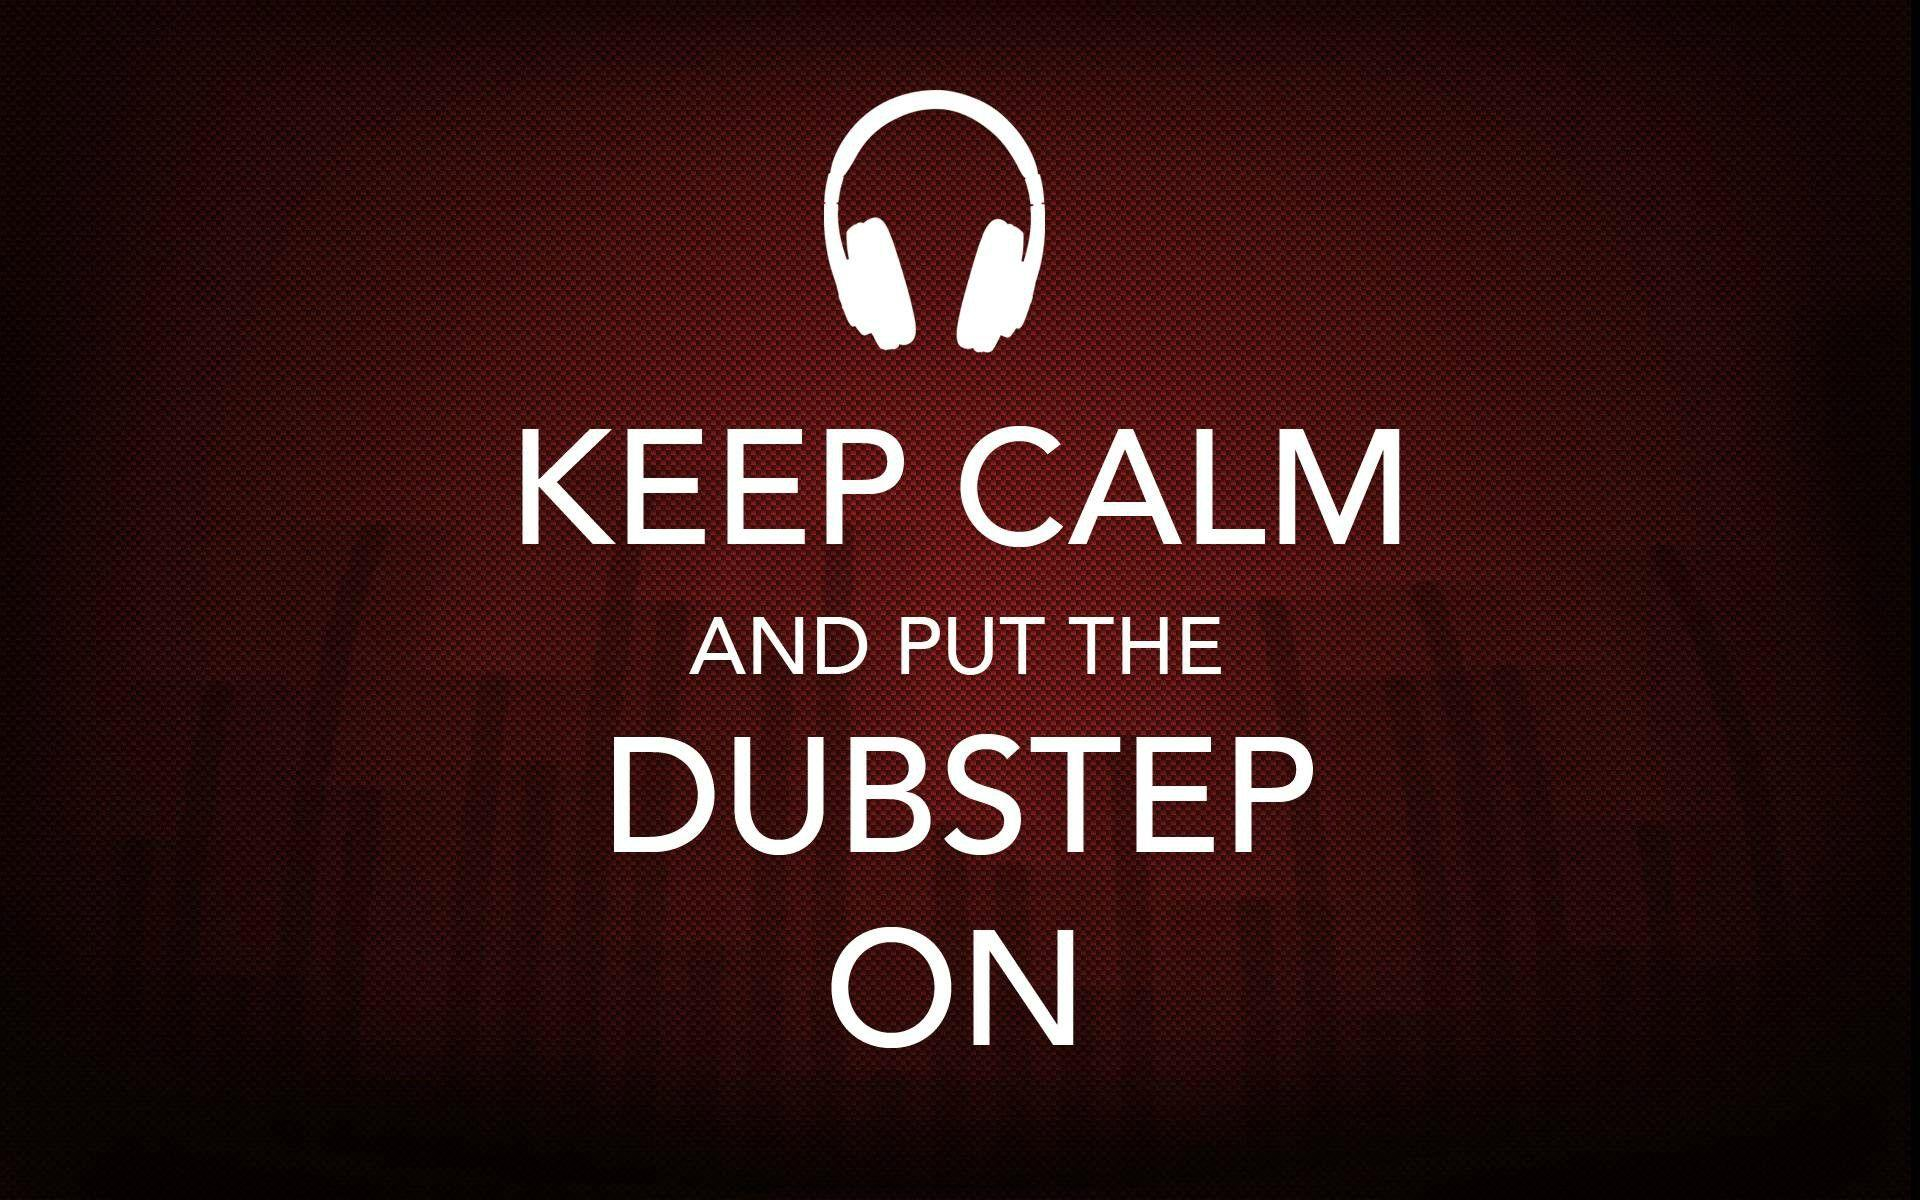 Bane Quotes Wallpapers Dubstep Wallpapers Wallpaper Cave